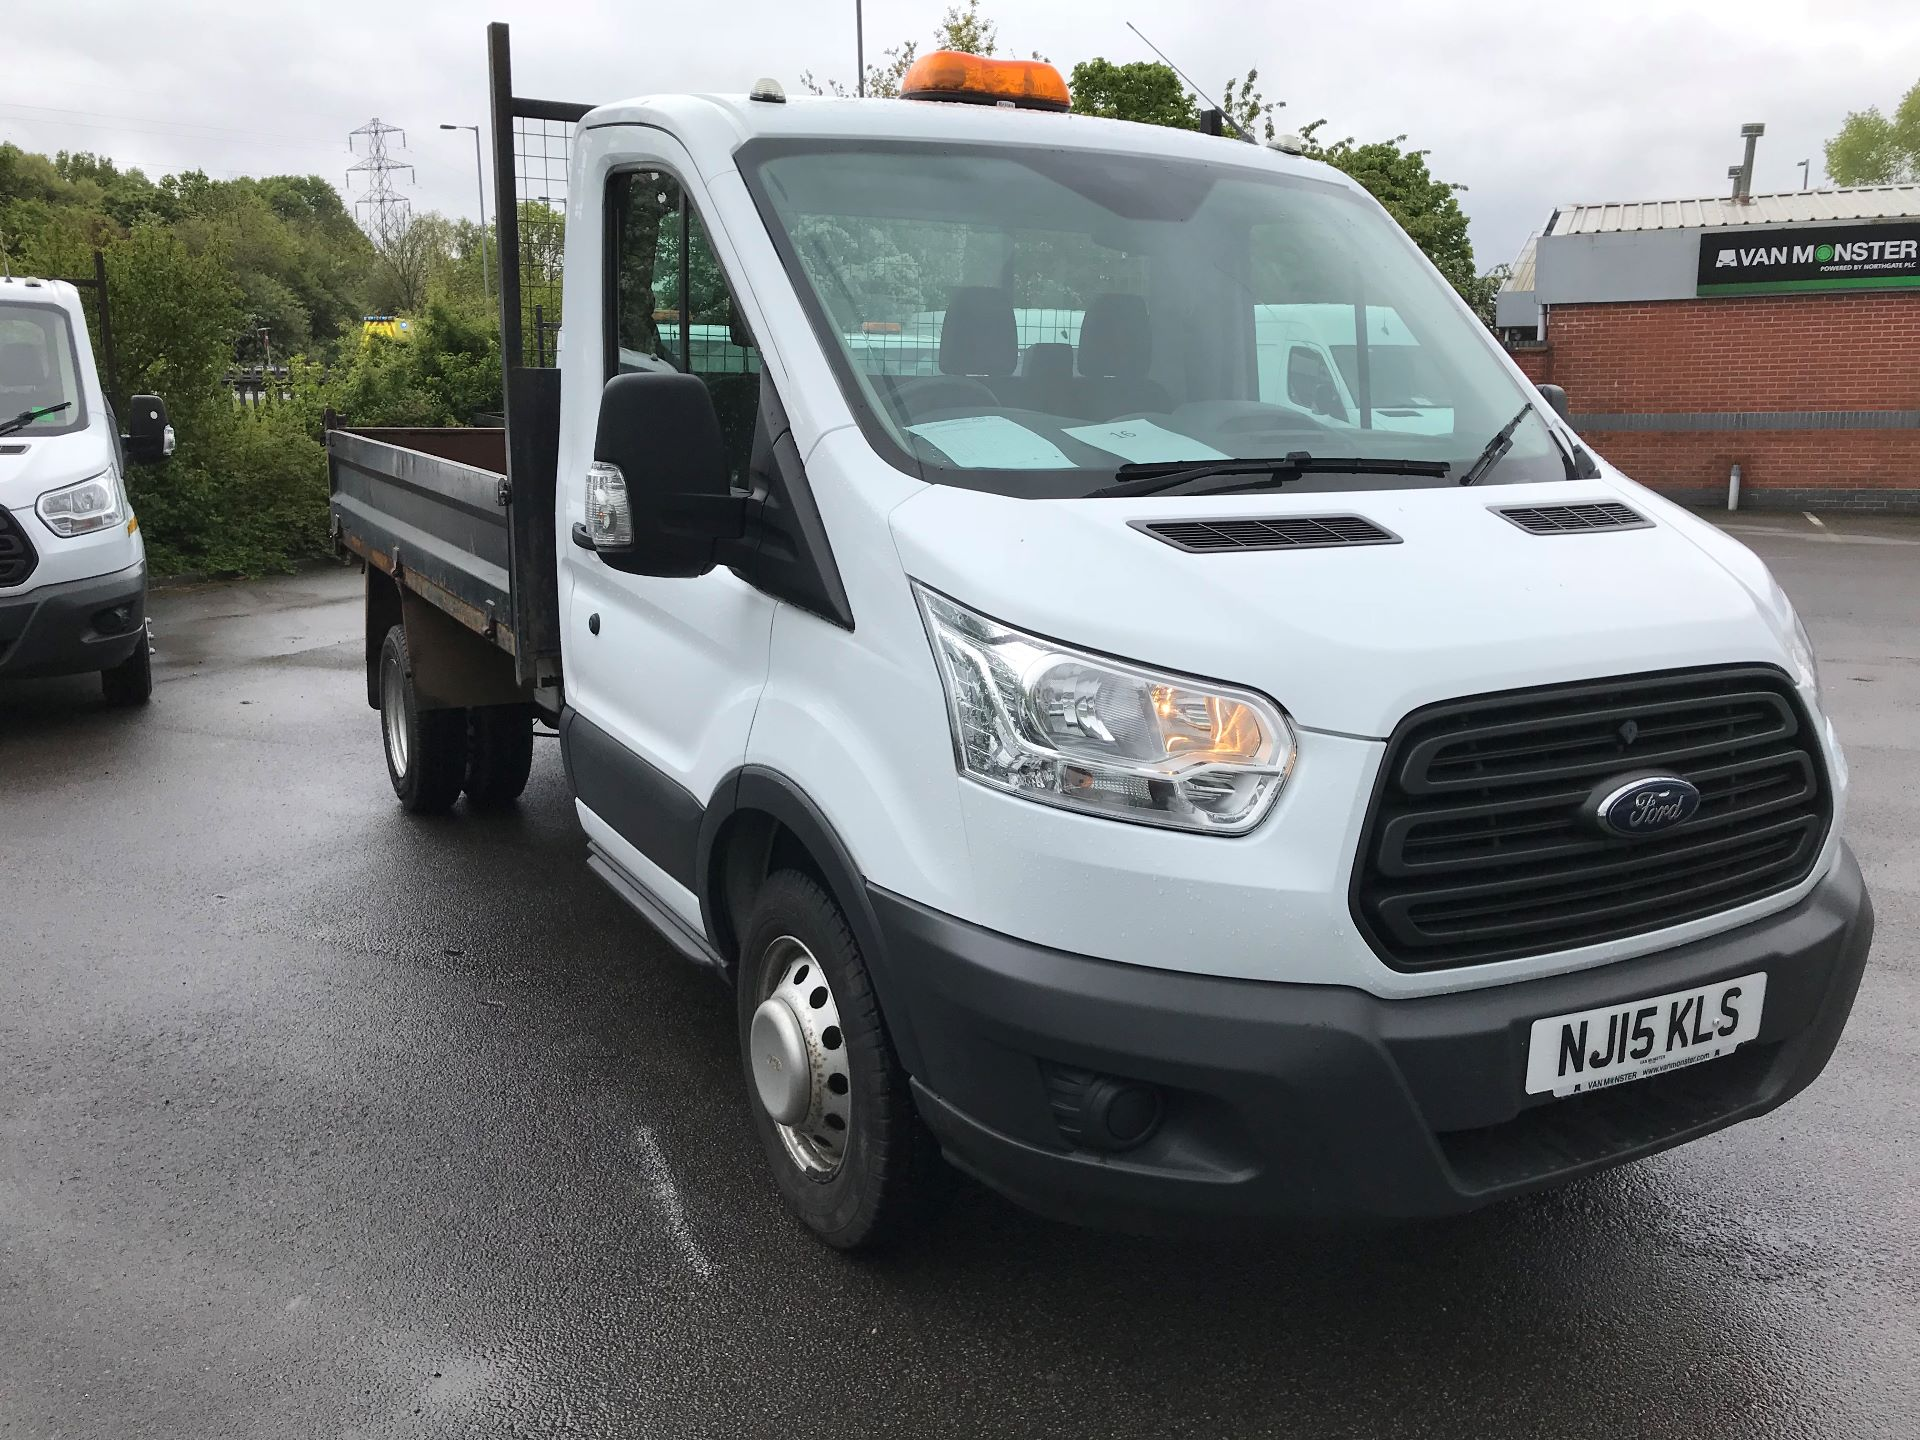 2015 Ford Transit 350 L2 SINGLE CAB TIPPER 100PS EURO 5 (NJ15KLS)